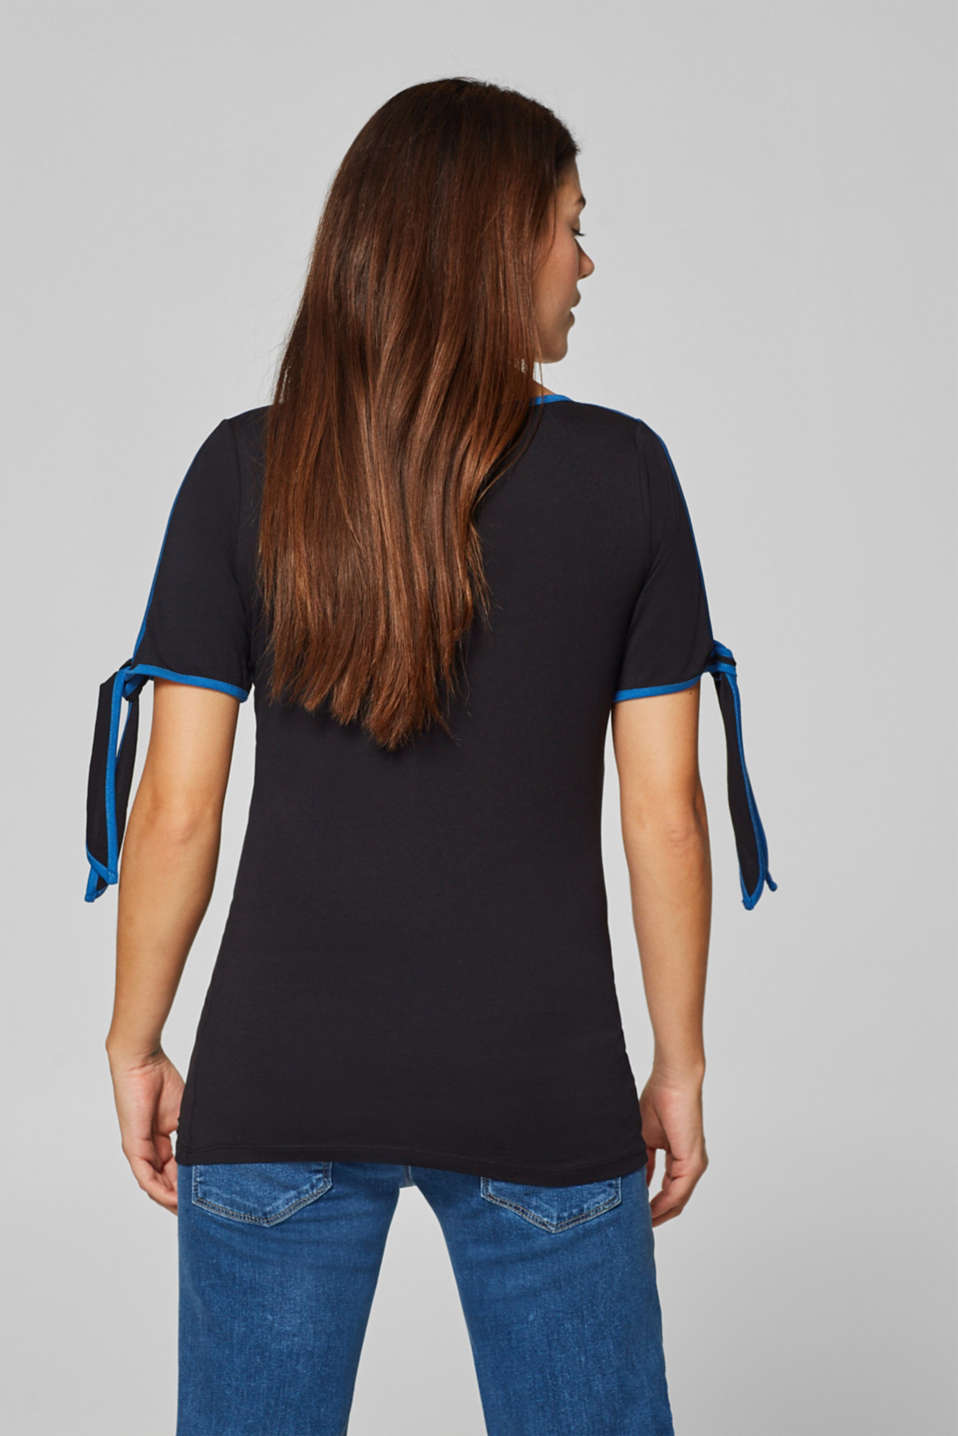 T-shirt with piping and bows on the sleeves, LCBLACK, detail image number 3